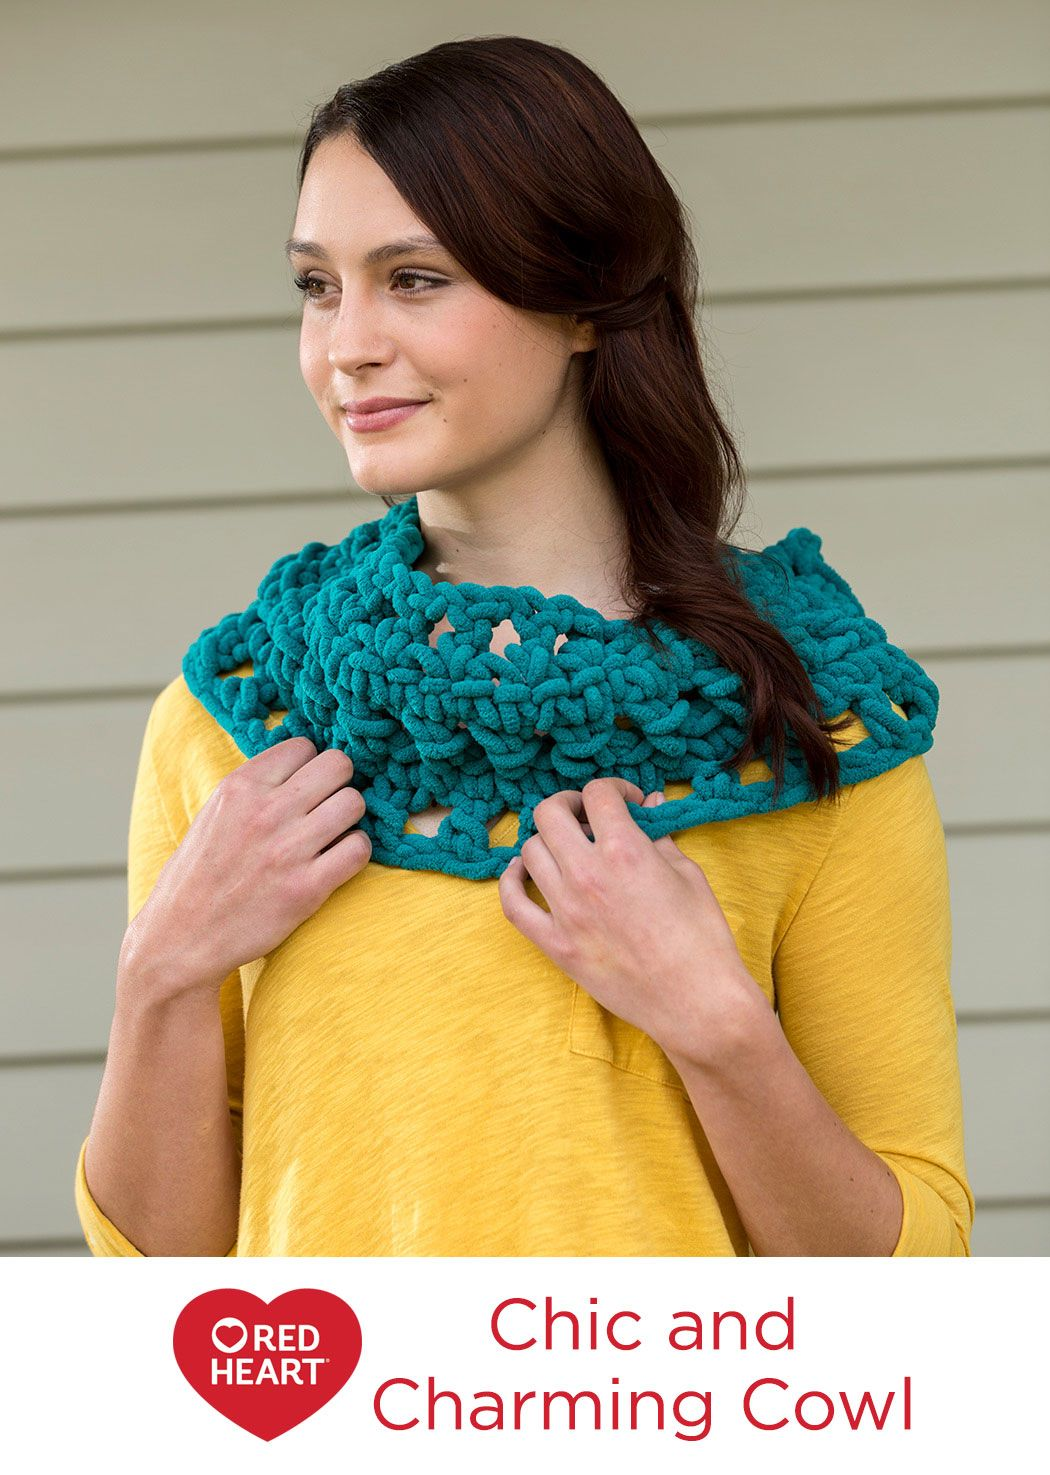 Chic charming cowl free crochet pattern from red heart yarns chic charming cowl free crochet pattern from red heart yarns this velvety chenille yarn bankloansurffo Image collections